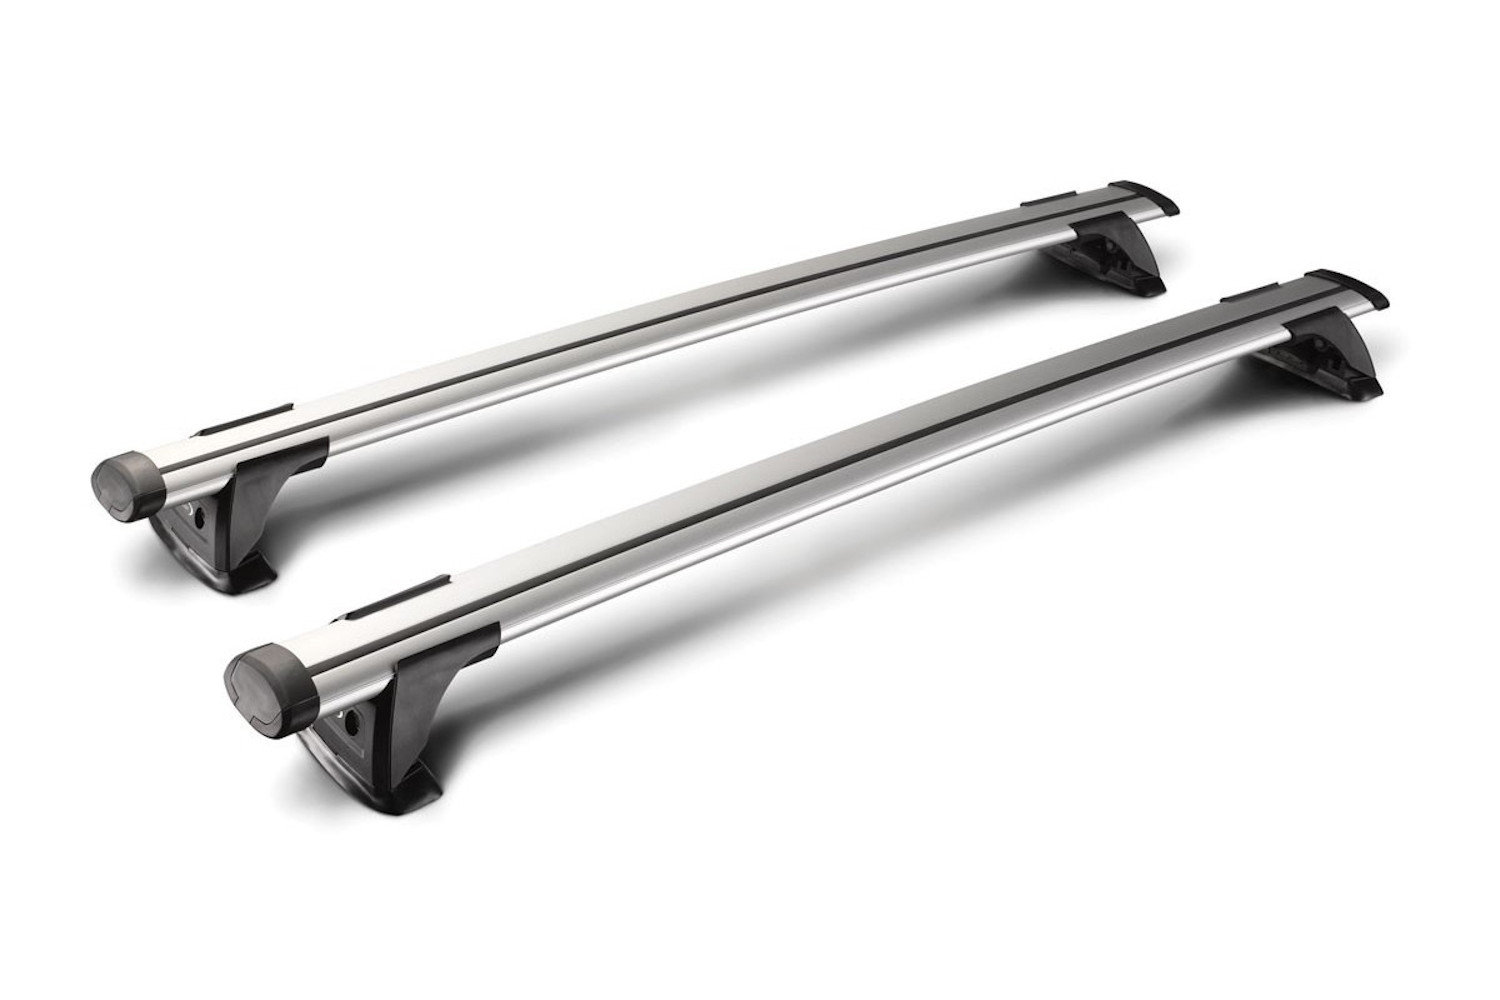 Whispbar Through Bar roof rack bars set / Dachträger / Relingträger Satz / dakdragers set / jeu de barres de toit